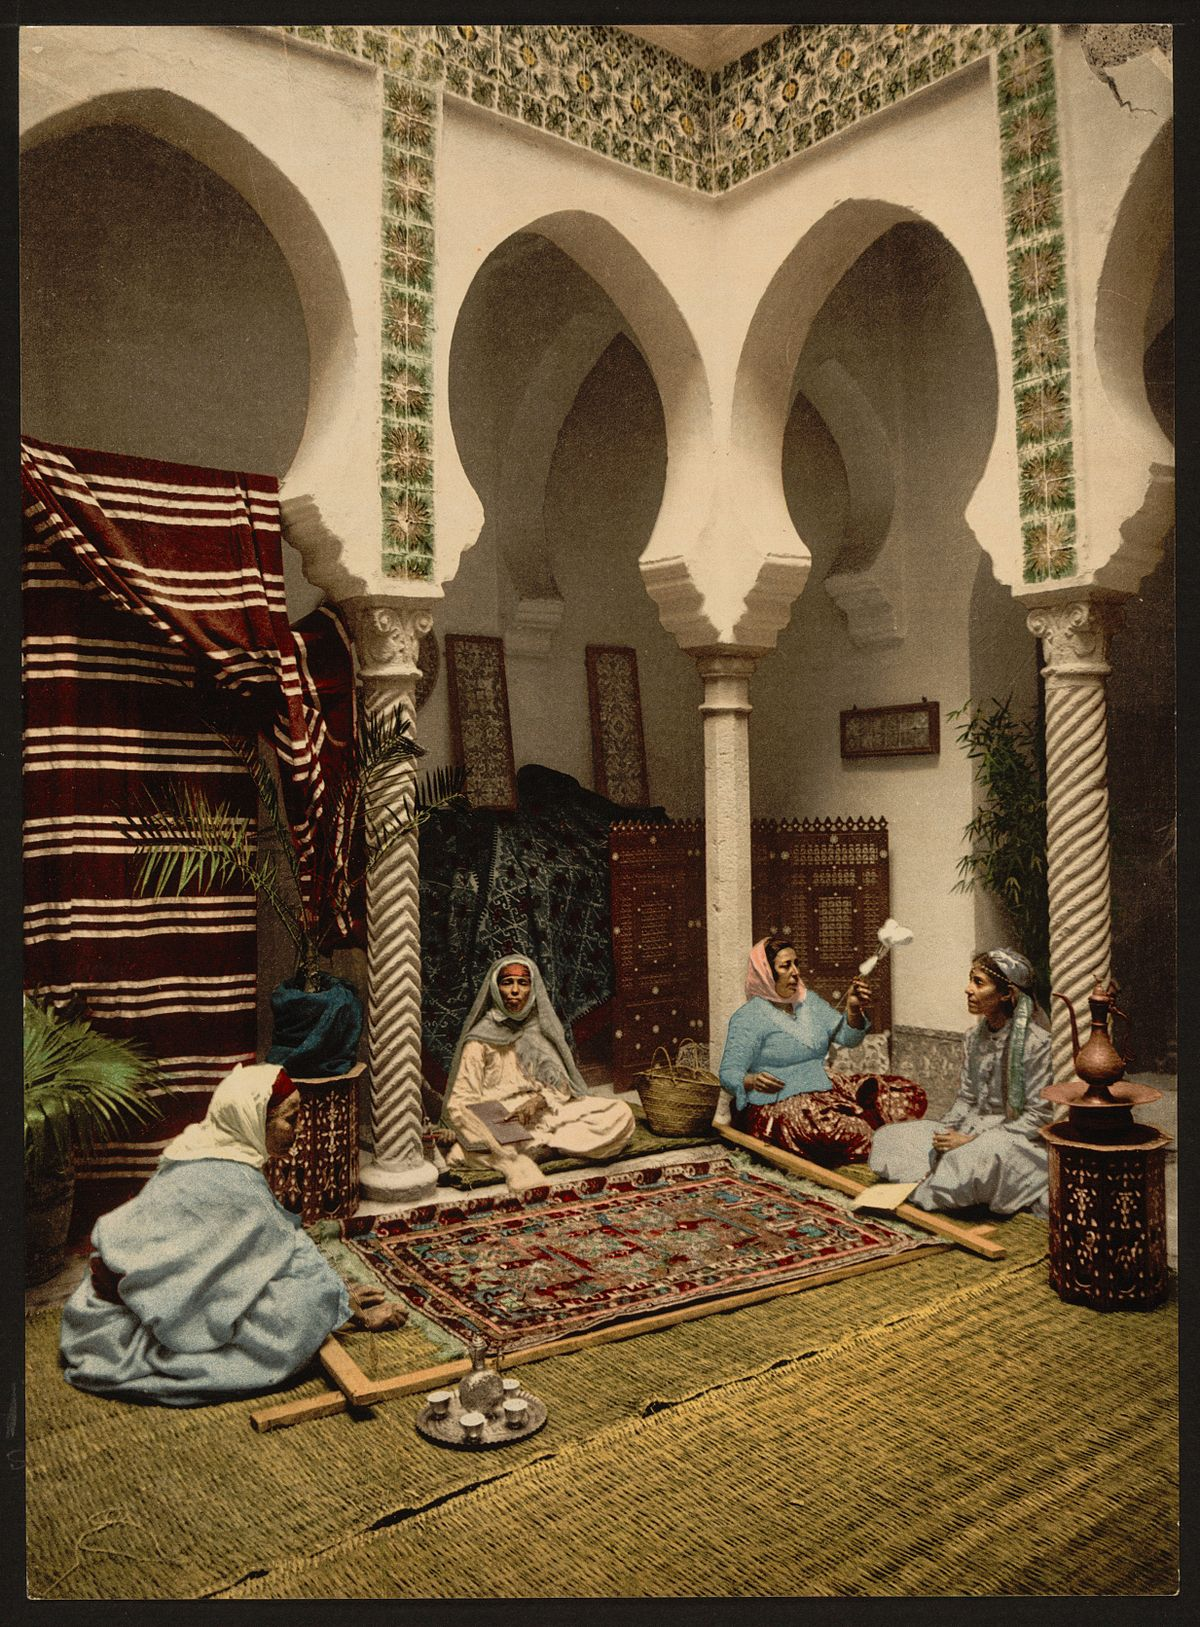 Of And & Morocco Arab Traditions History Culture